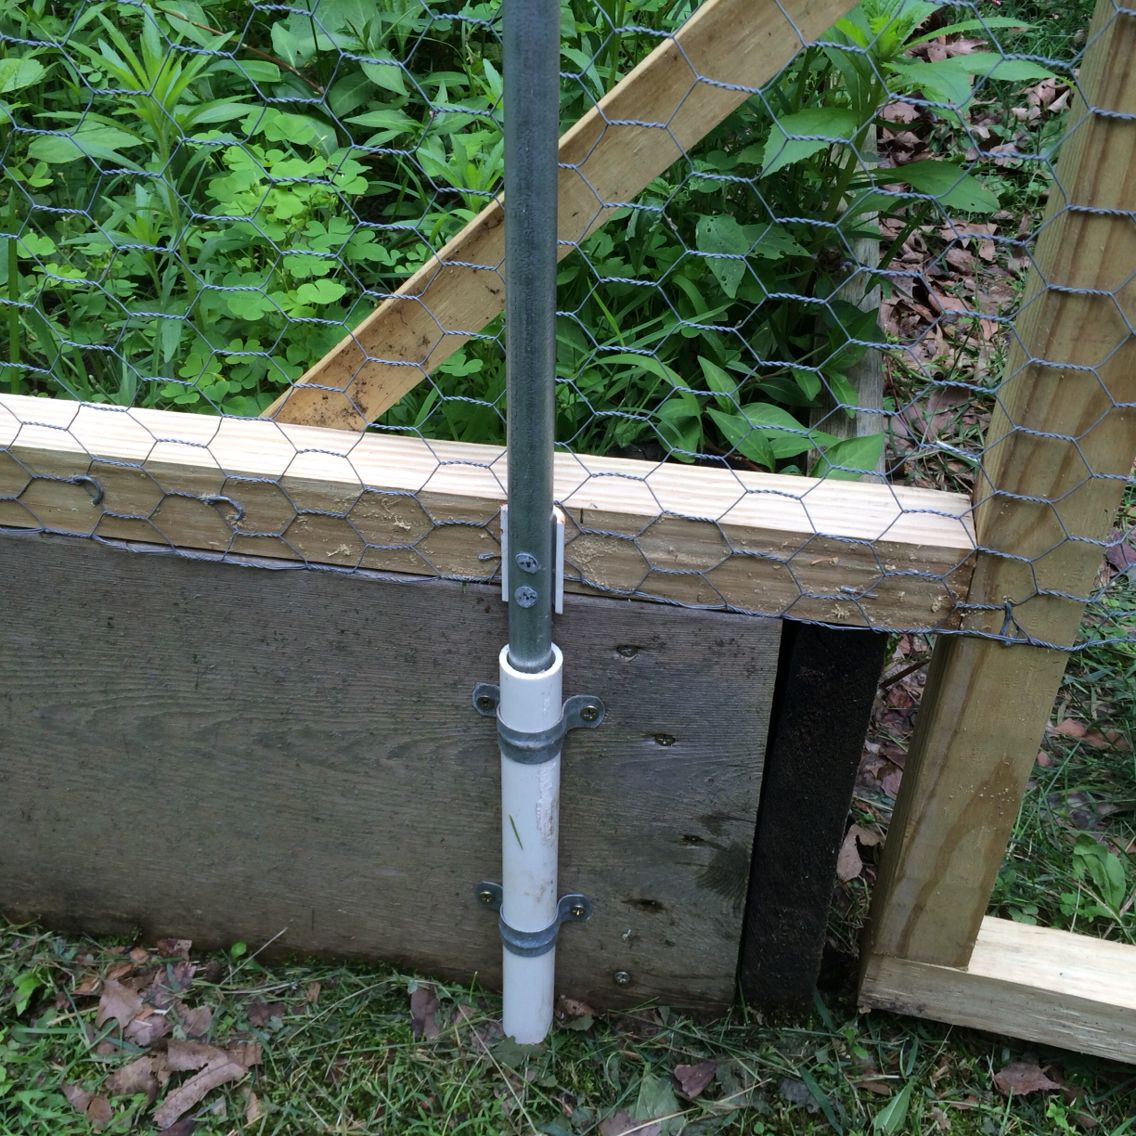 Removable Garden Fence Constructed From Reused Pvc Pipe